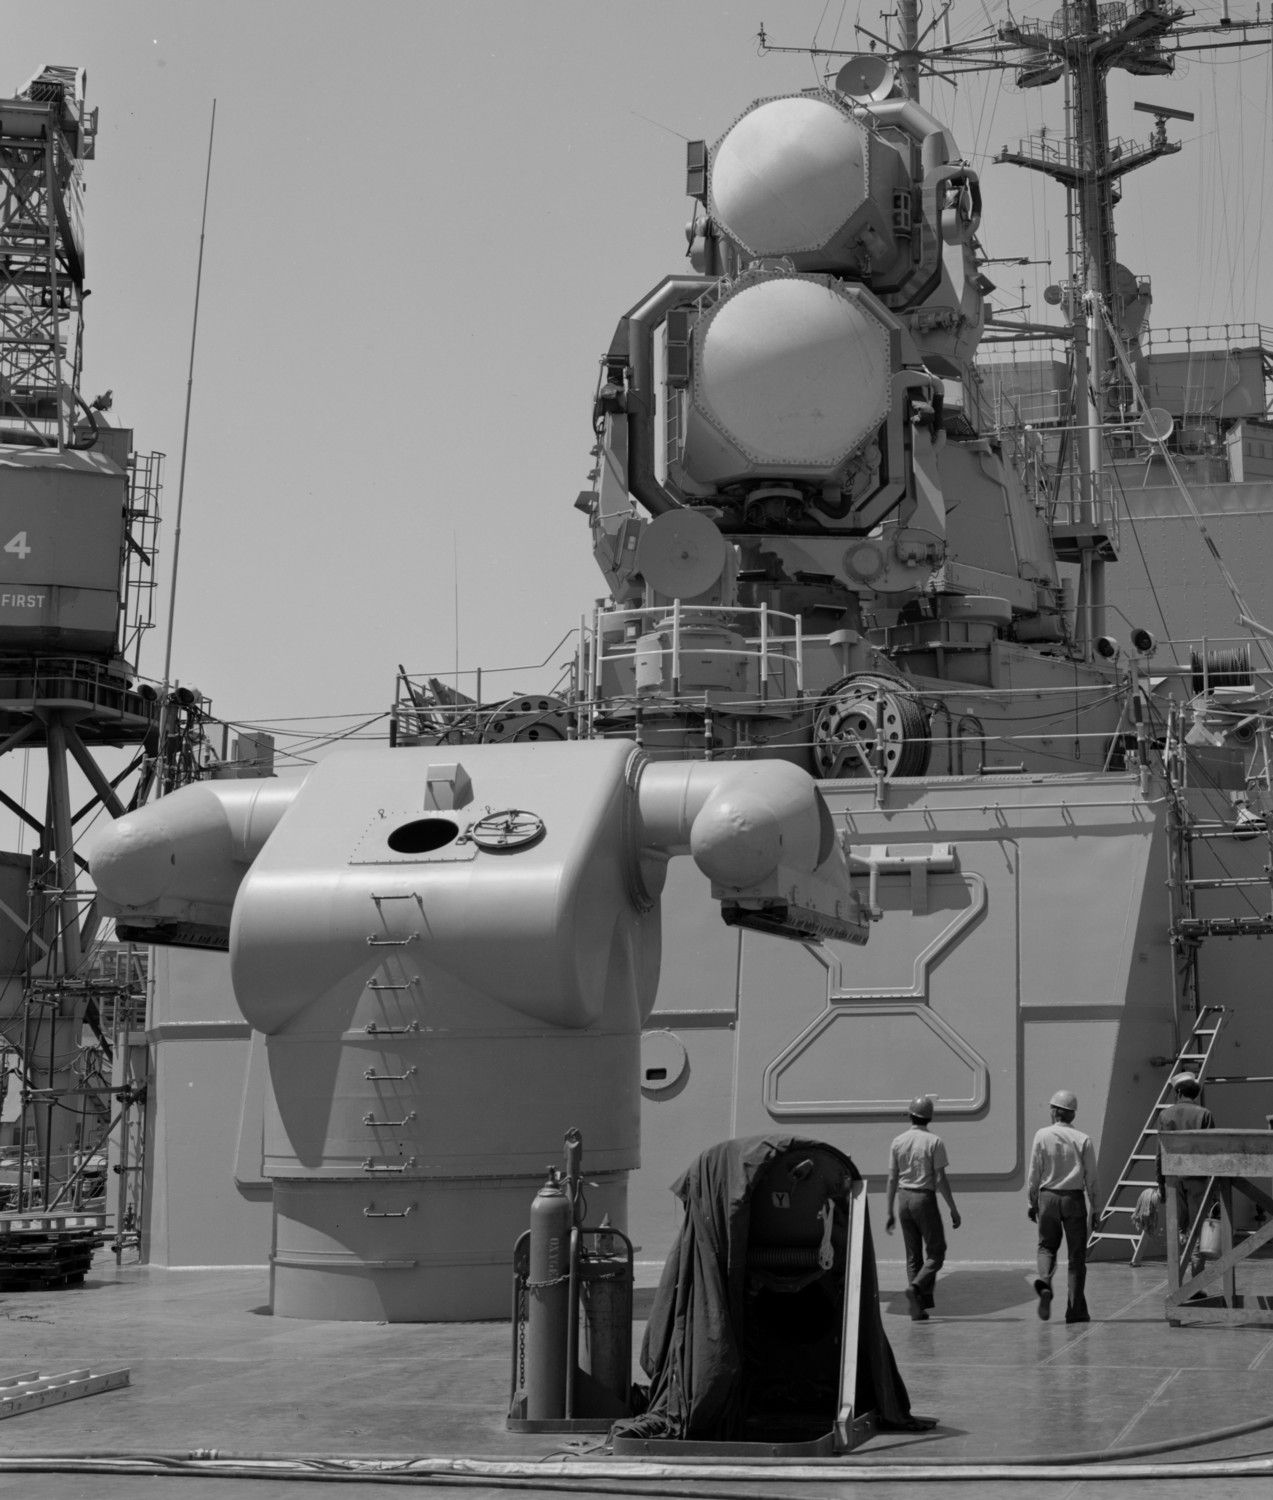 Mk 12 Guided Missile Launching System Gmls Aboard Uss